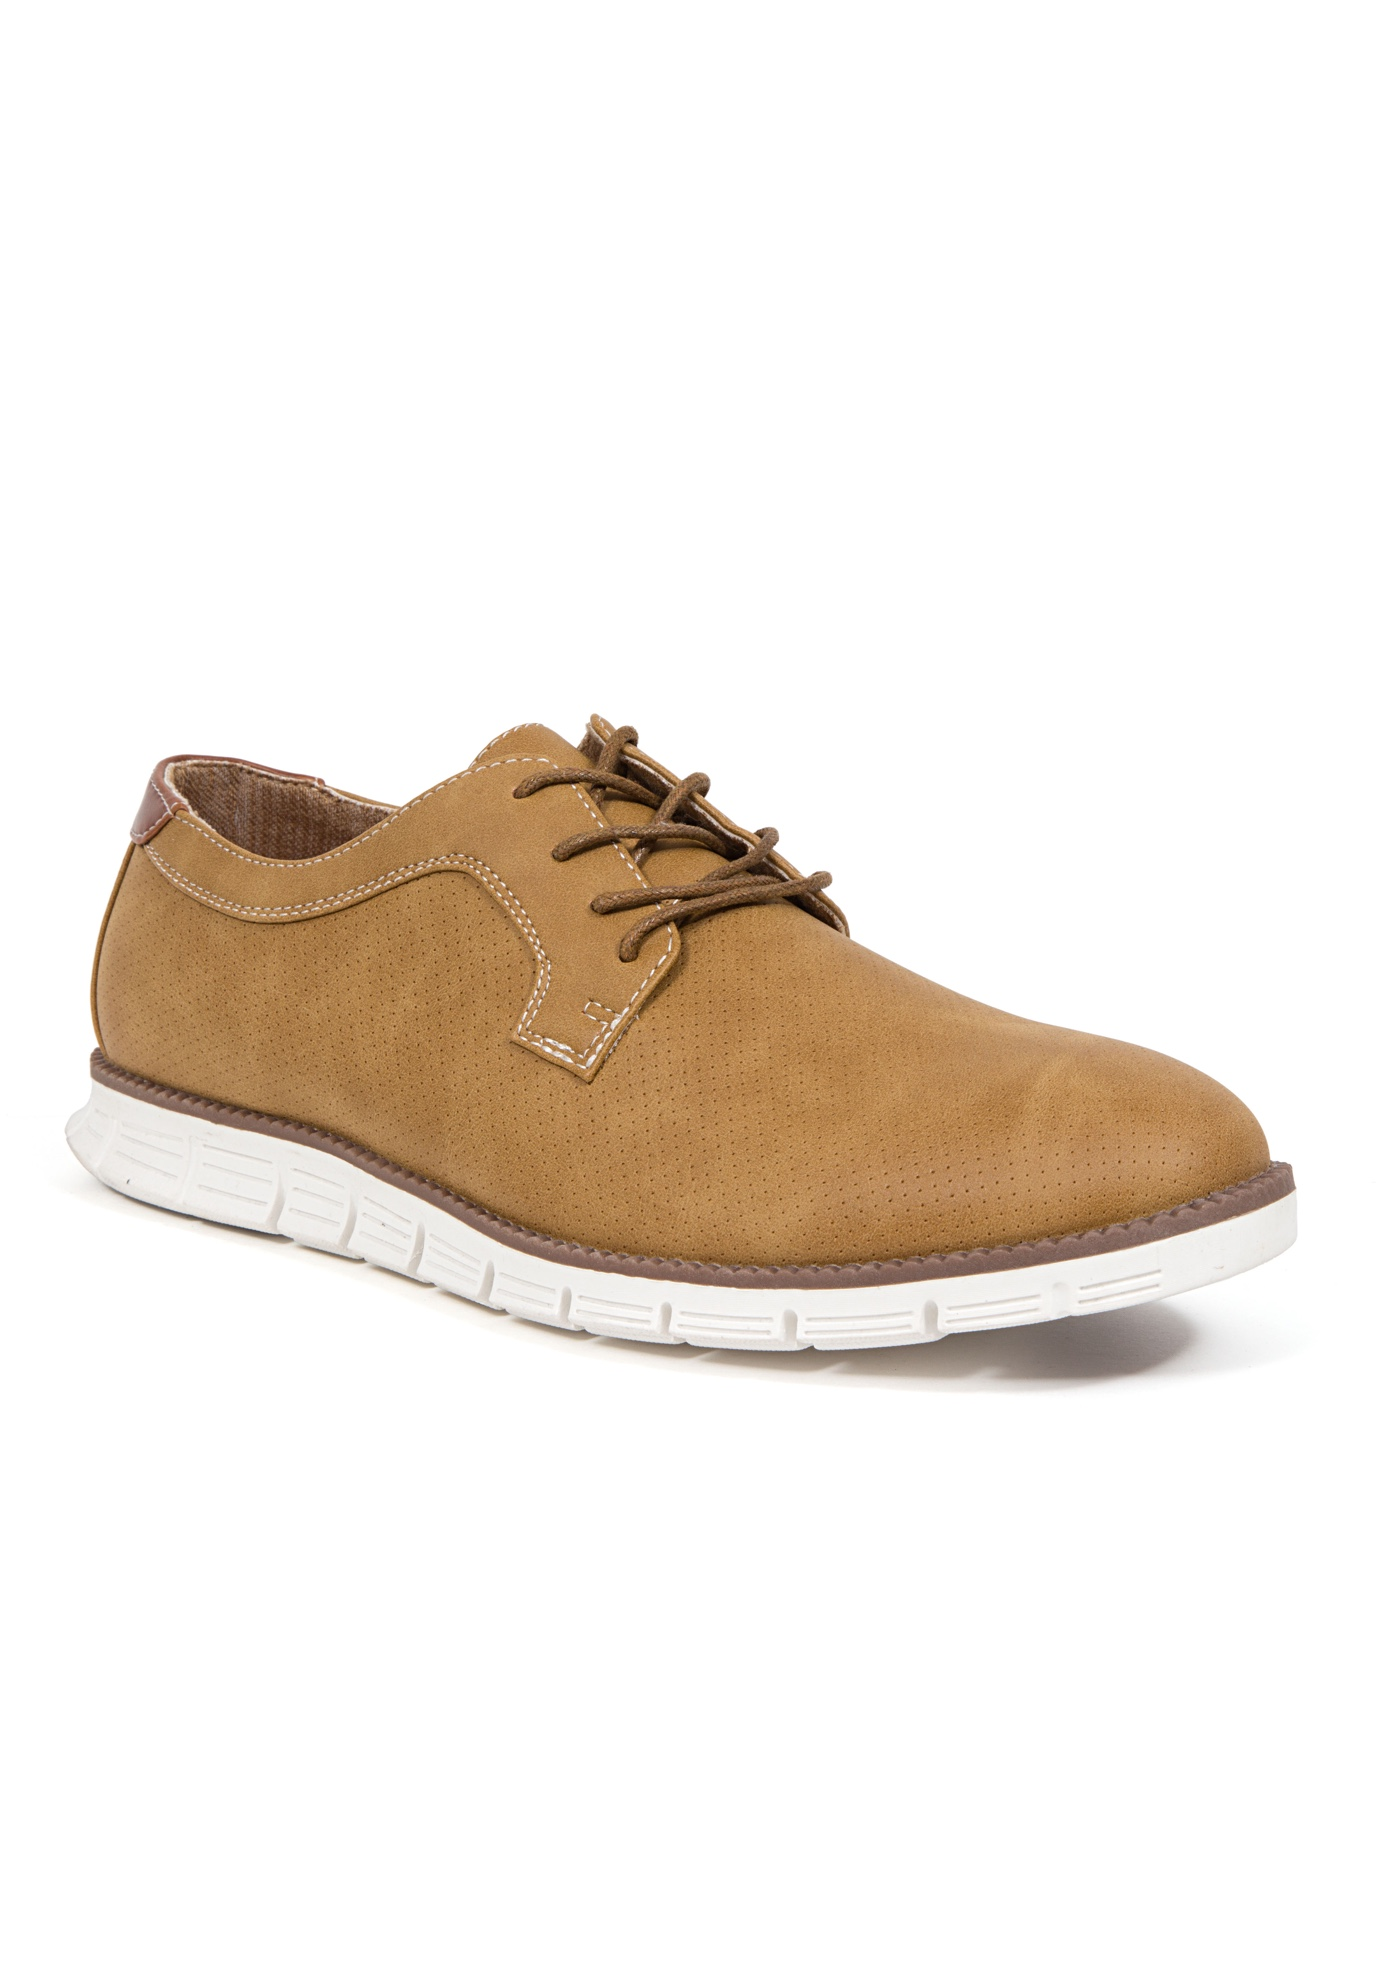 Deer Stags® Axel Memory Foam Classic Lace-up Wingtip Lightweight Oxford Sneaker Hybrid,